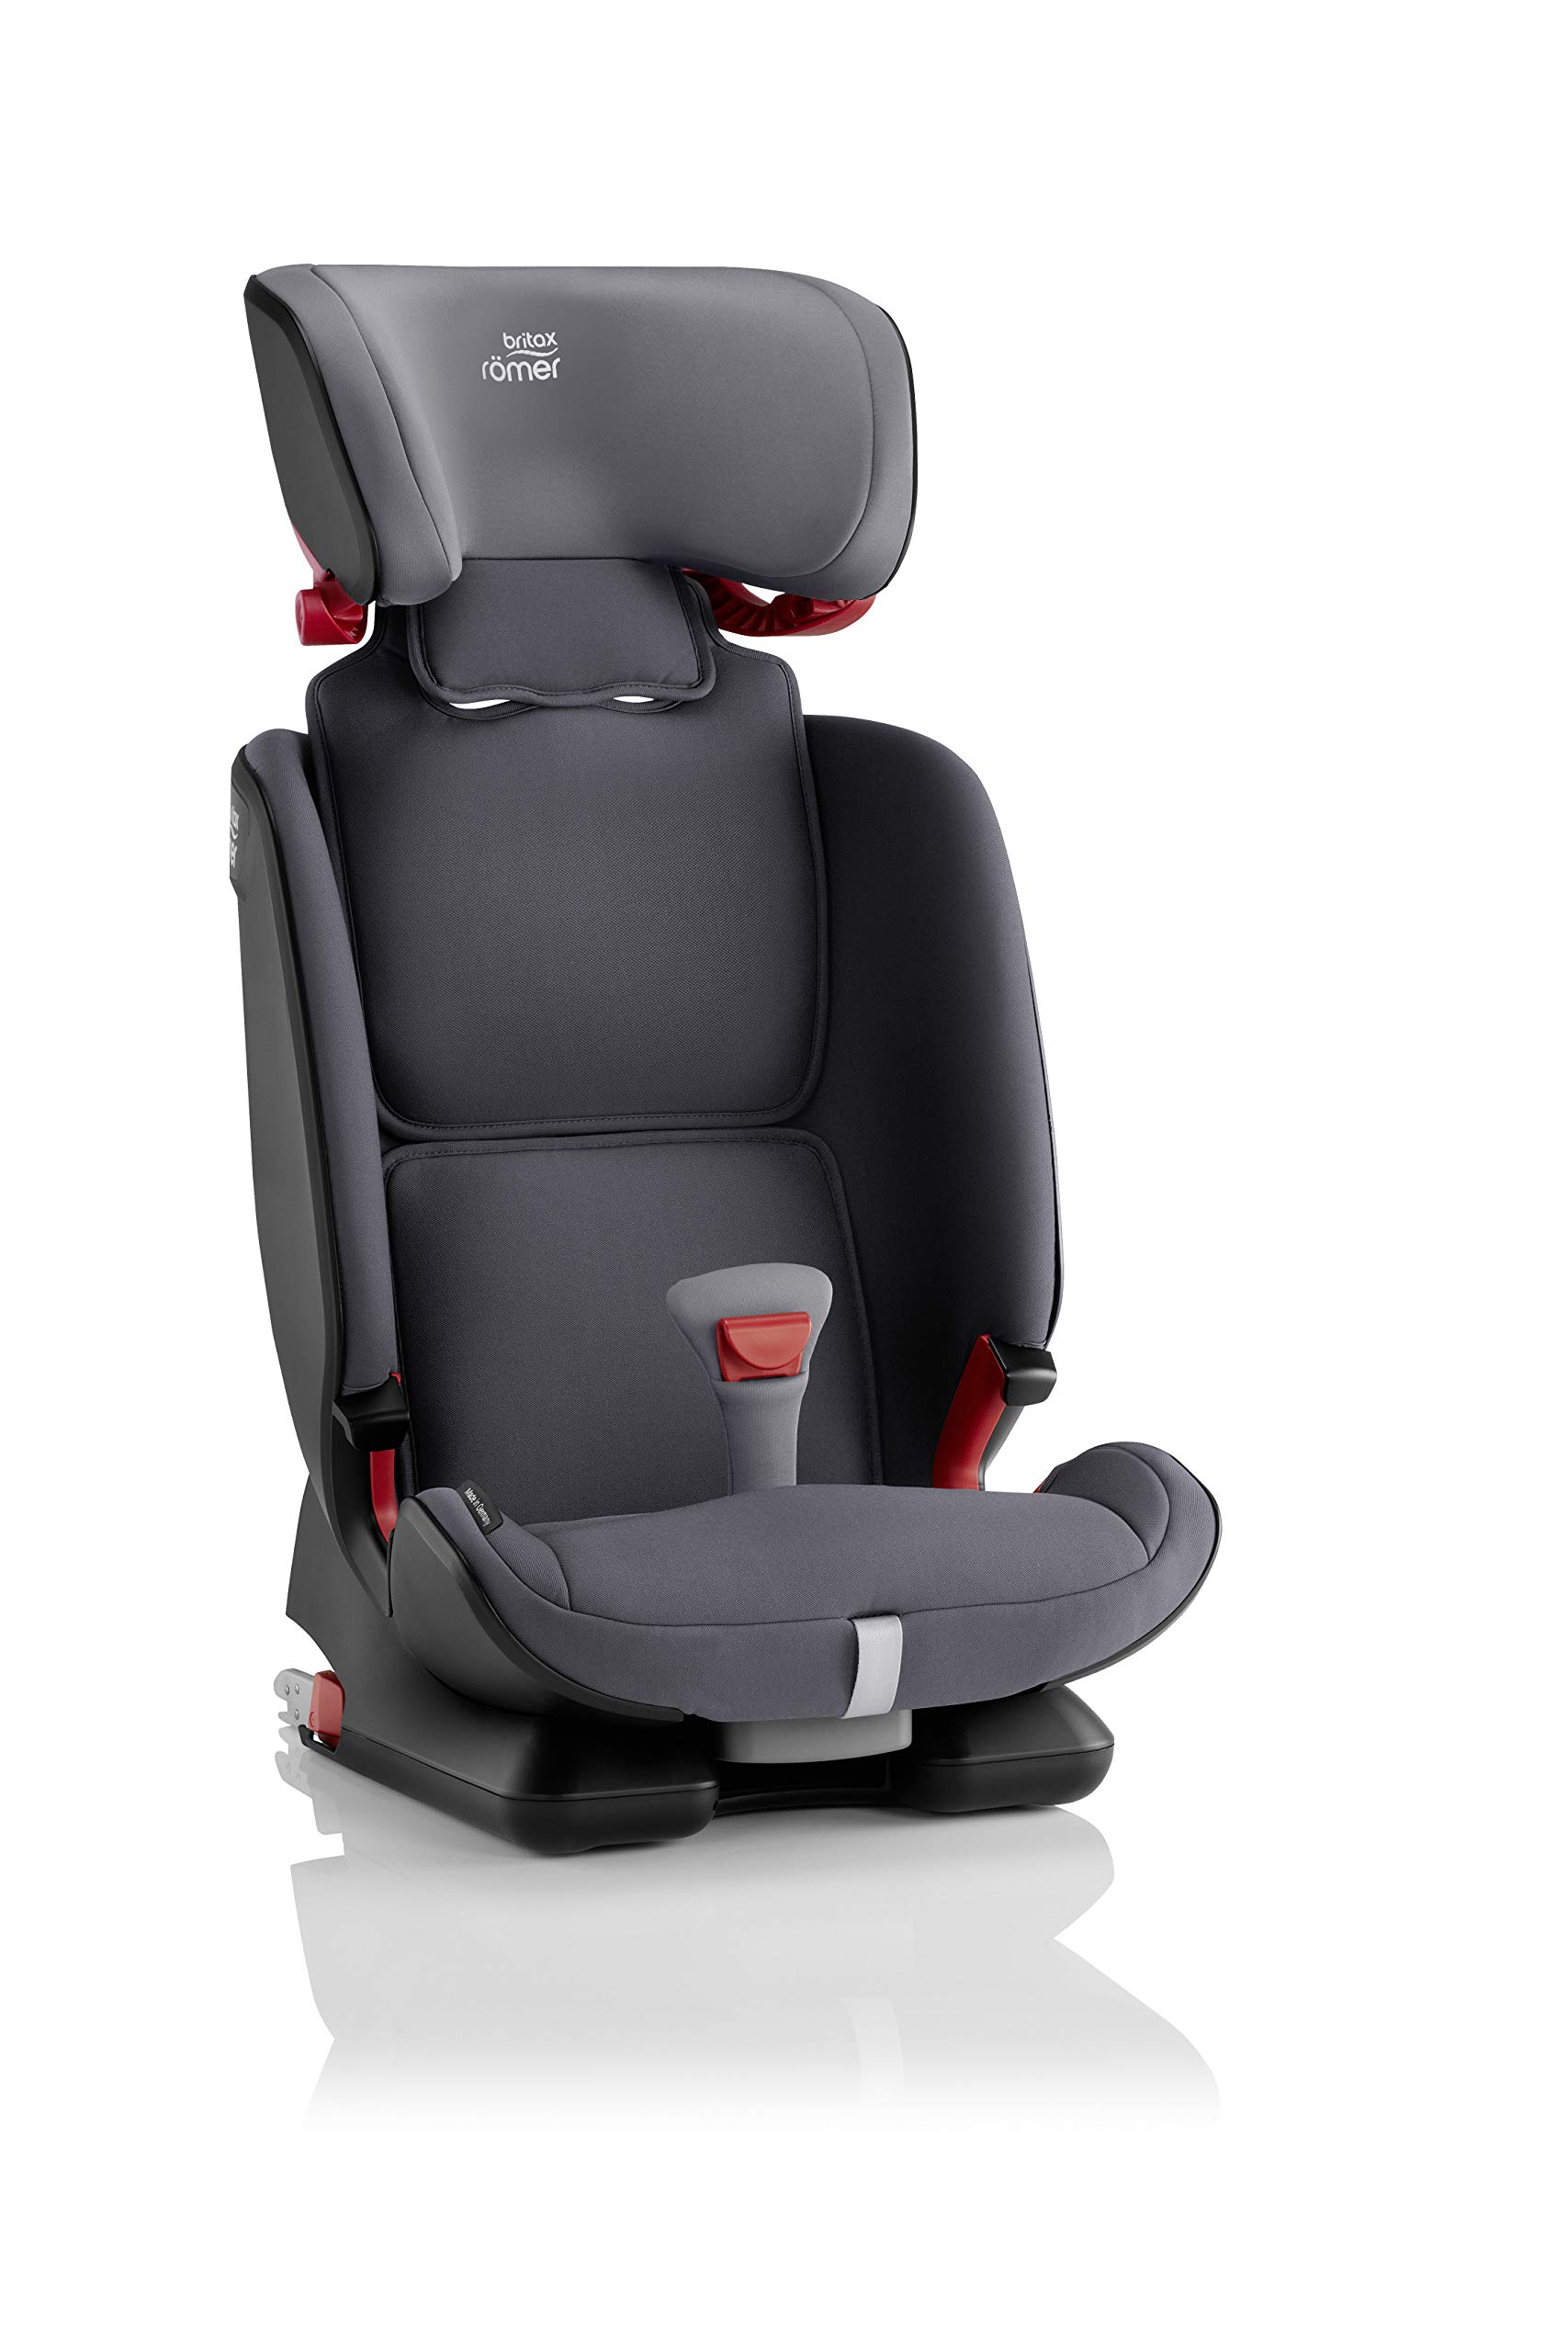 Britax Römer ADVANSAFIX IV M Group 1-2-3 (9-36KG) Car Seat- Storm Grey Britax Römer Our patented pivot link isofix system directs the force first downward into the vehicle seat, and then forward more gently - greatly reducing the risk of head and neck injury for your child We believe that a 5-point harness is the safest way to secure your child in a car seat because it keeps your child safe and tight in the seat's protective shell Soft neoprene performance chest pads fit comfortably on your child's chest. They help reduce your child's movement in the event of a collision, and add even greater comfort to the 5-point harness 7